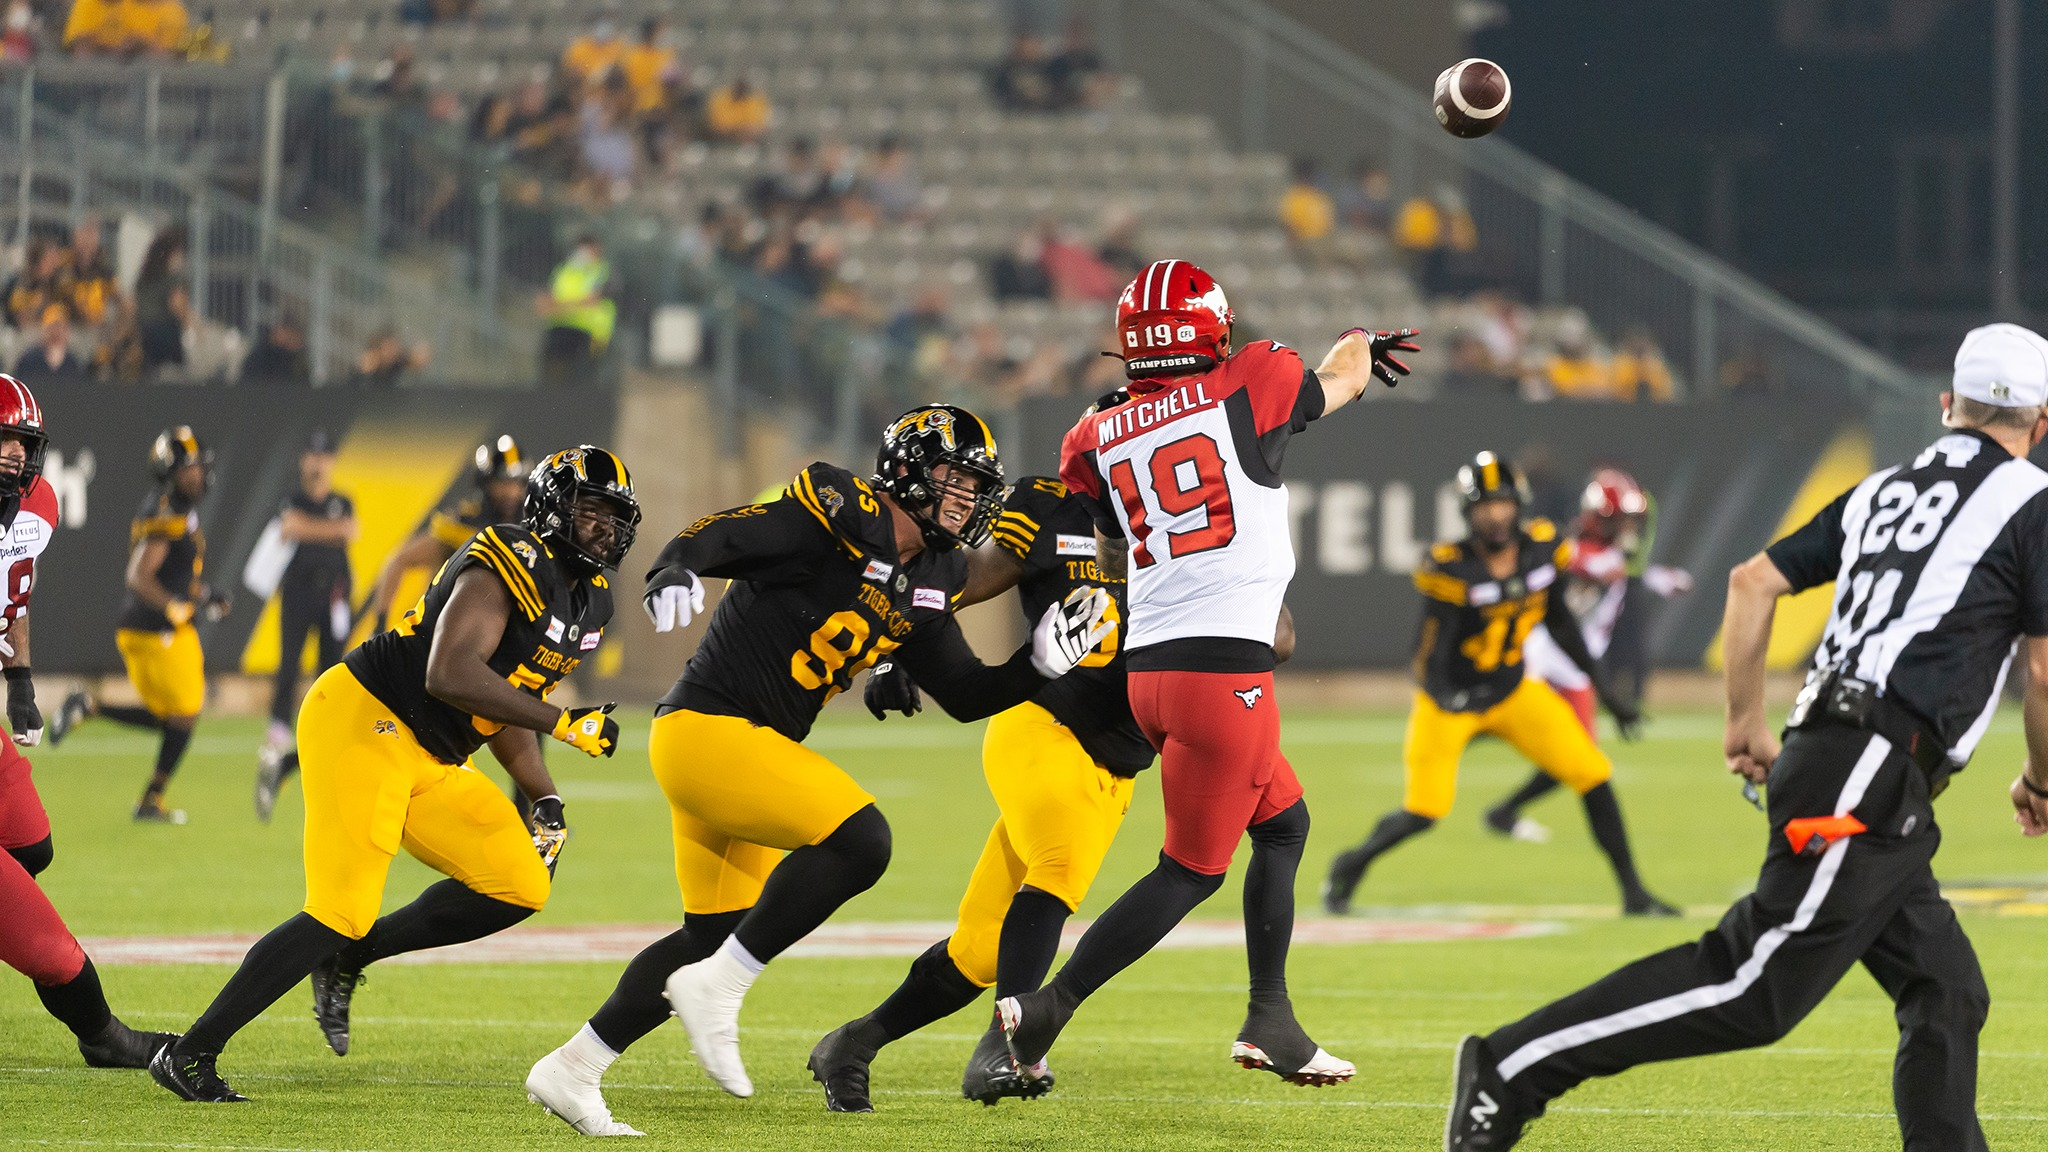 Stamps Fall In Hamilton